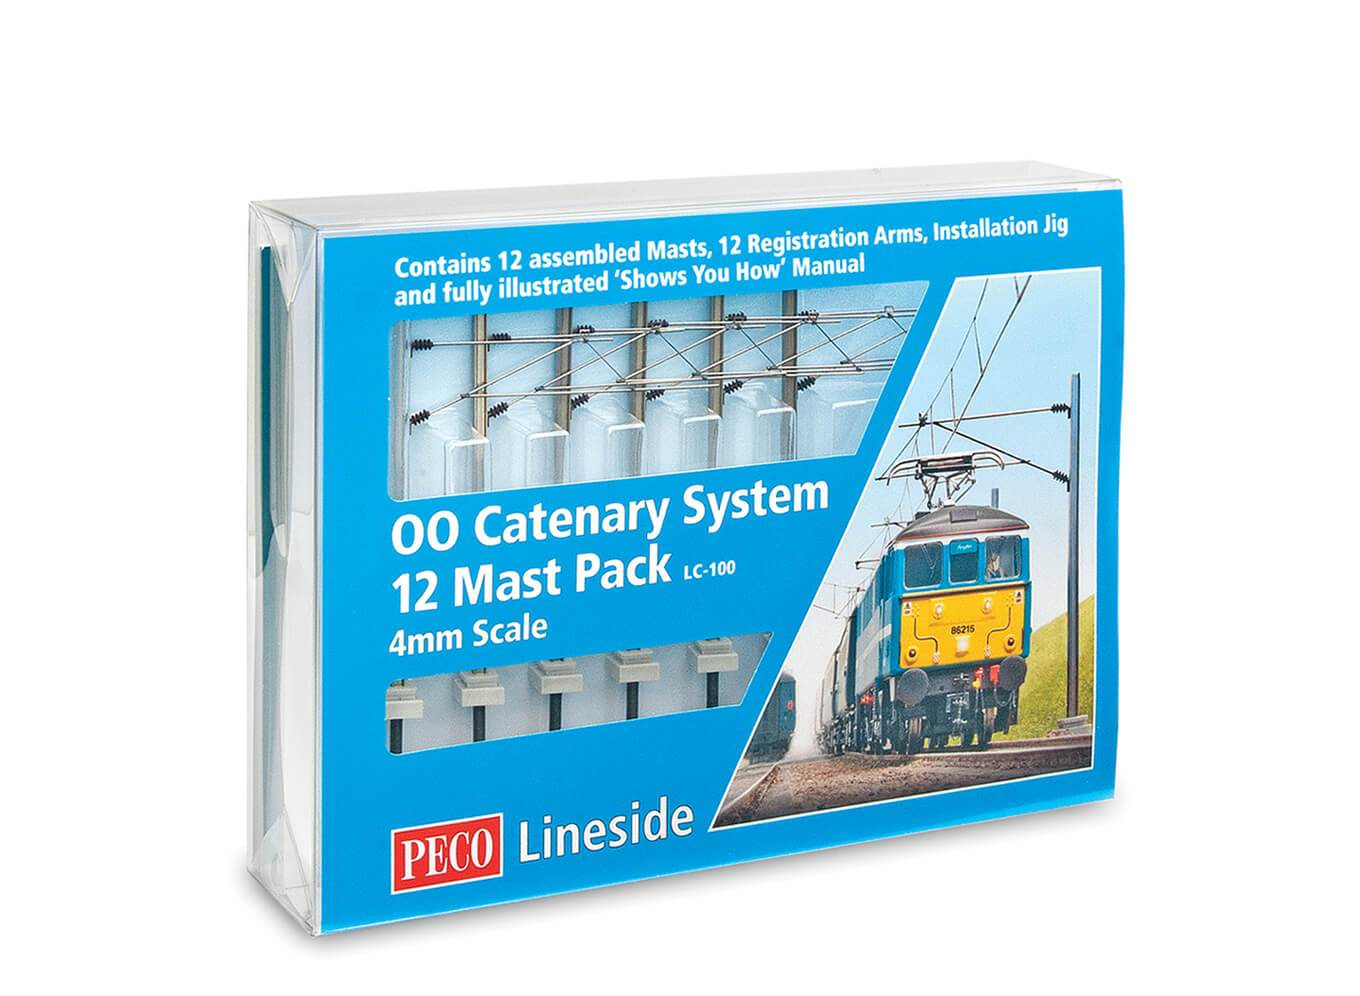 Catenary System Startup Pack – PECO